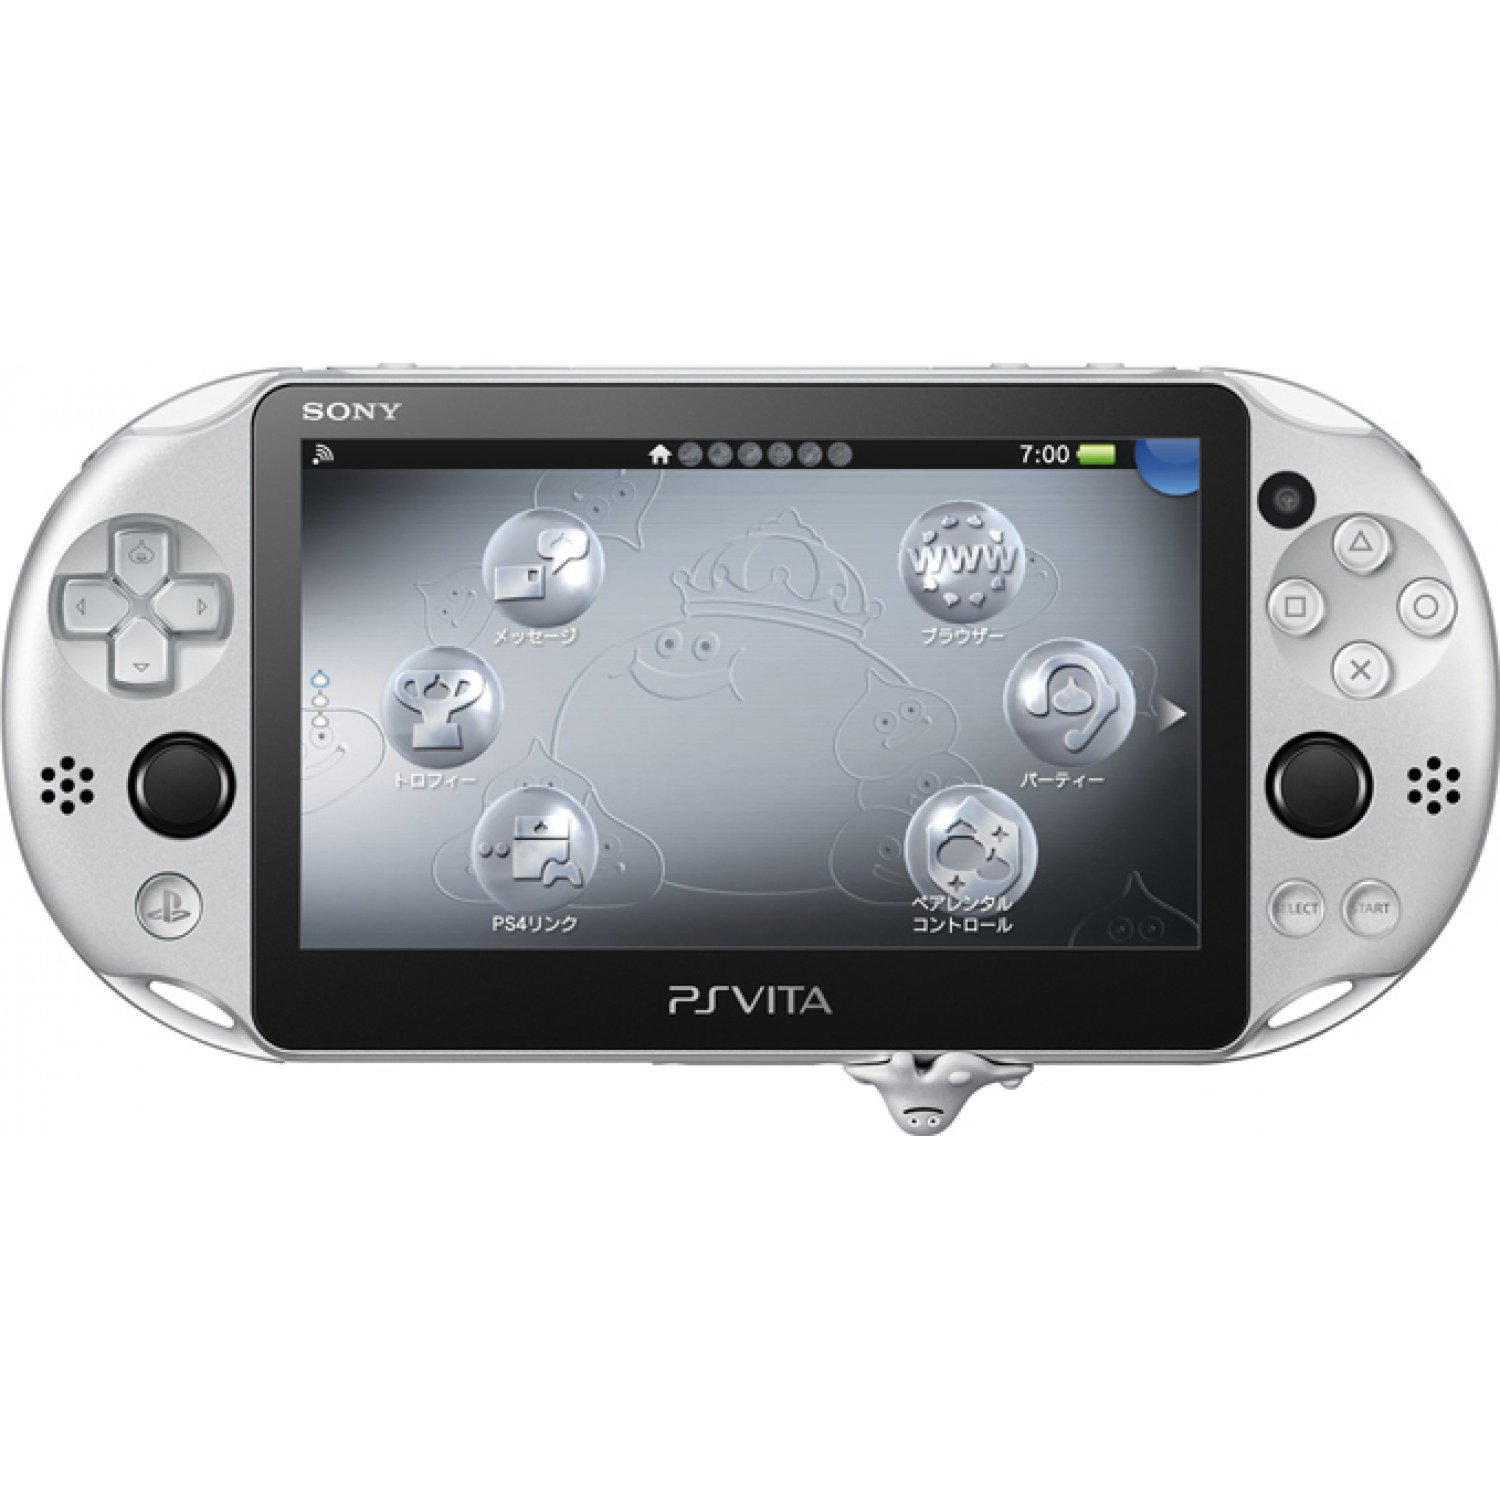 Sony Psp Games To Play : Playstation vita dragon quest metal slime edition